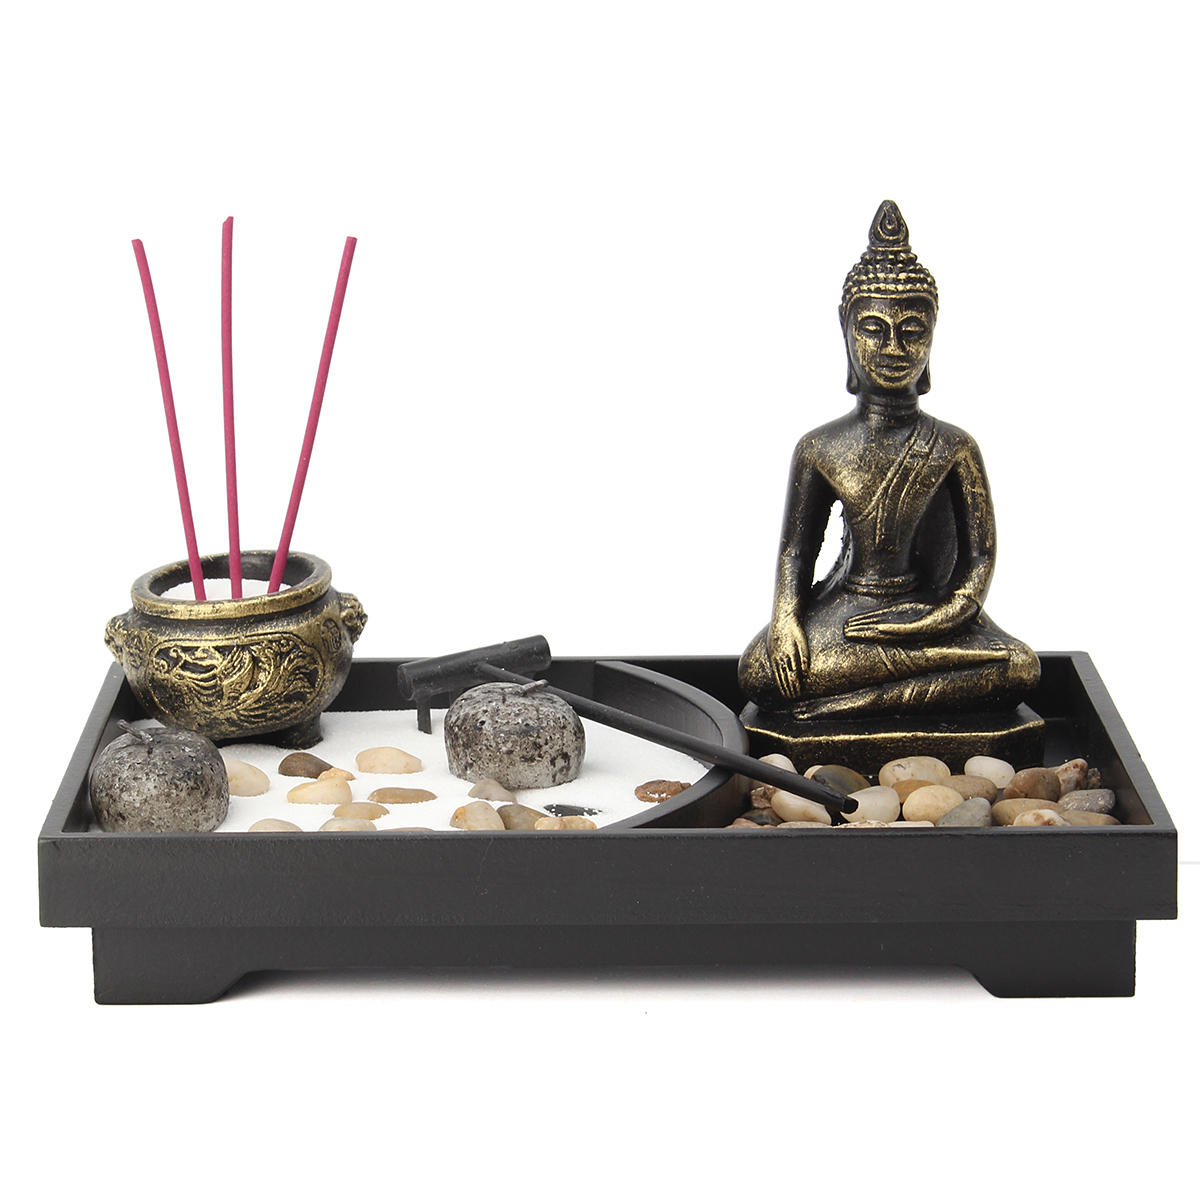 Table Top Zen Garden Zen Garden Kit Meditation Sand Rocks Candle Candle Holder Rake Tabletop Home Decorations